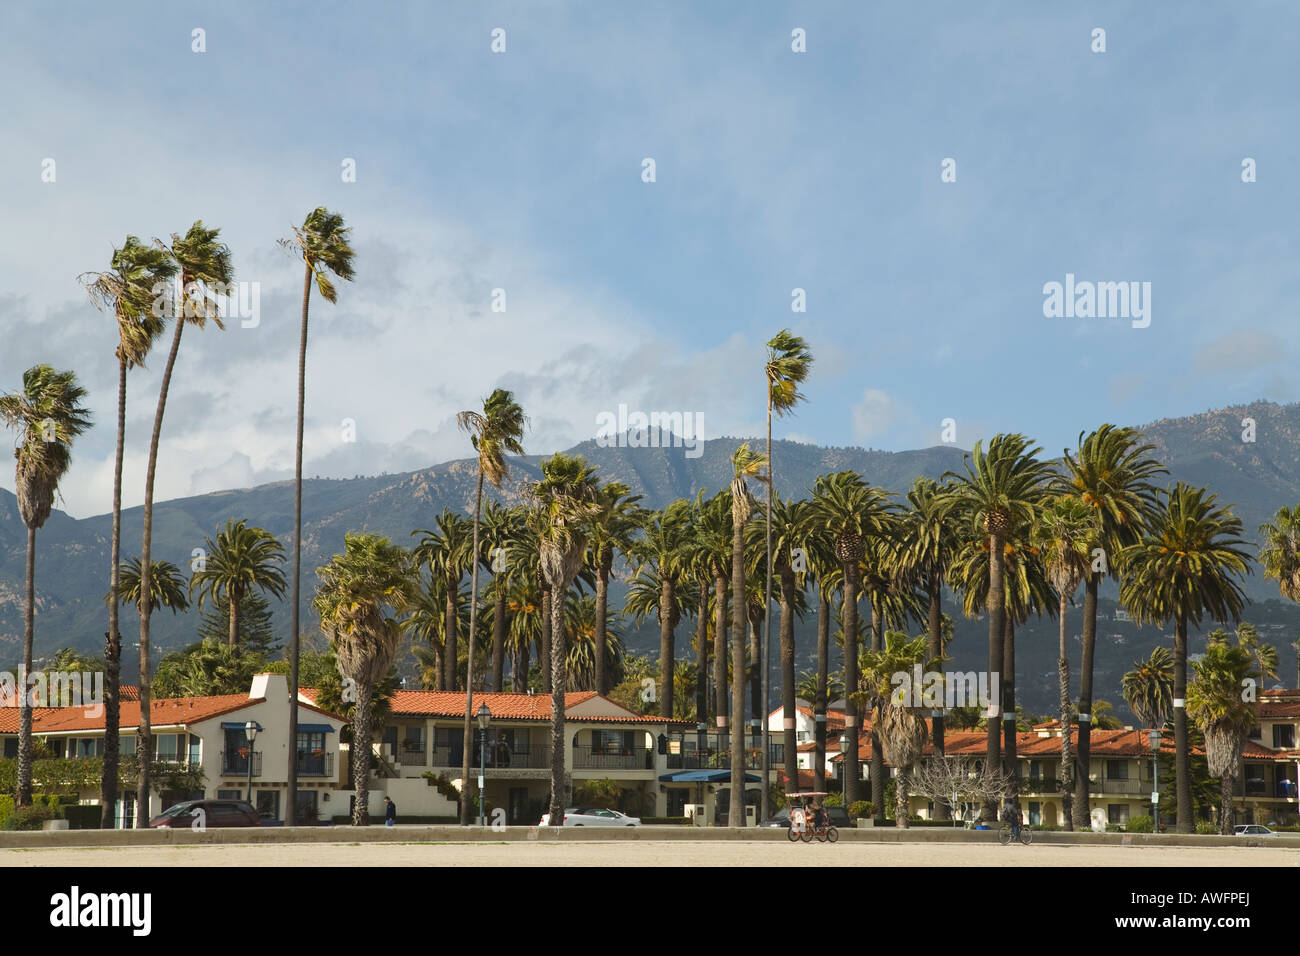 CALIFORNIA Santa Barbara Hotels along Cabrillo Boulevard palm trees red tile roofs across street from beach and - Stock Image